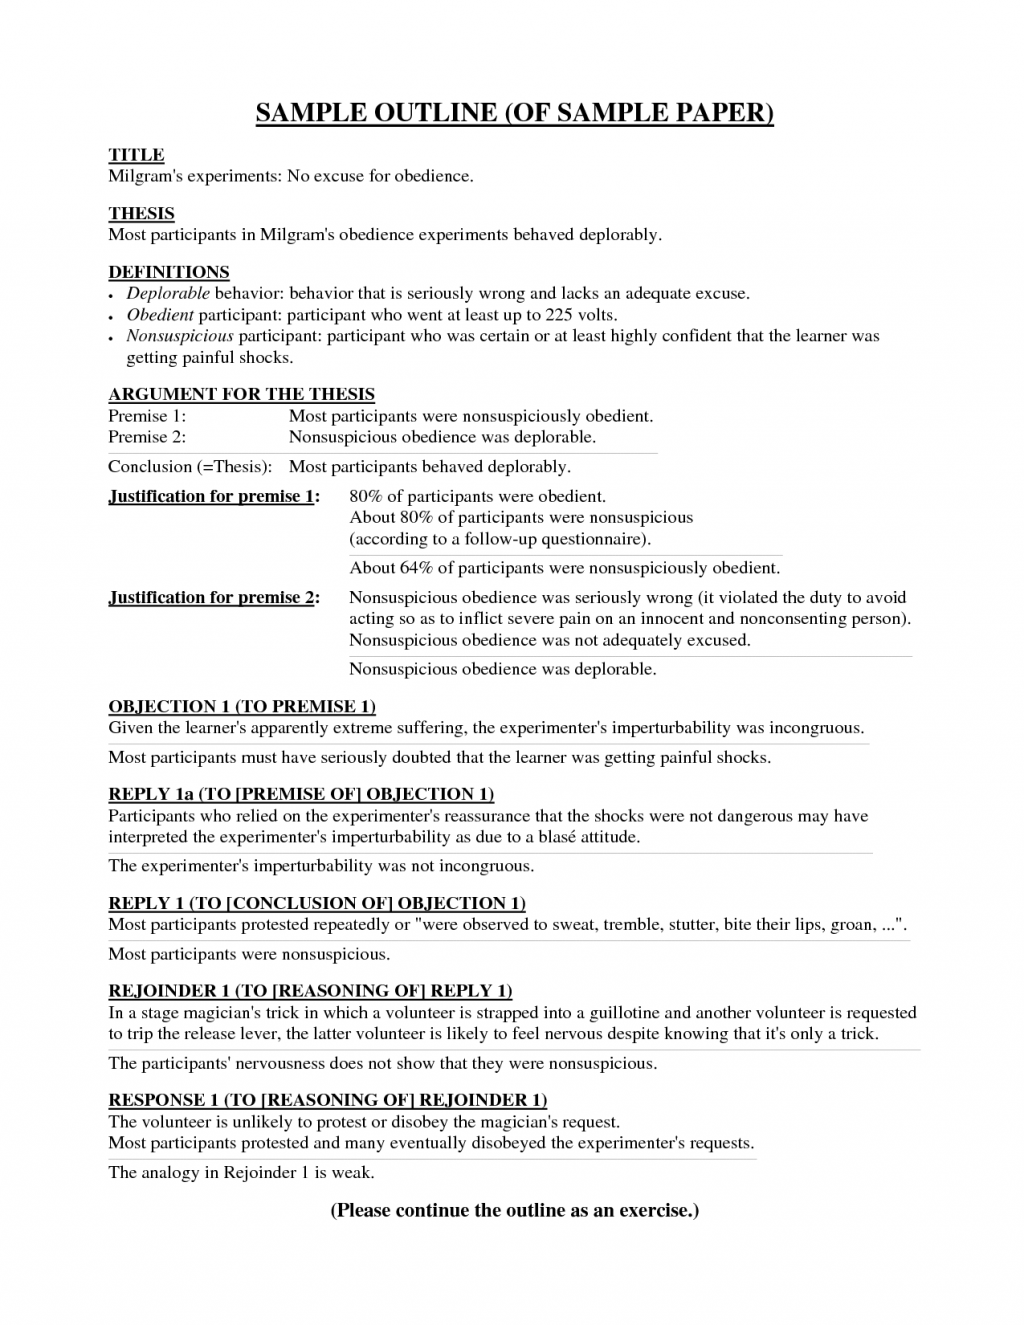 022 20example Essay Layout Thesis Paper Outline Picture Resume Examples Of Outlines For Research Papers In Apa20 1024x1325 Incredible Format Mla Sample Sentence Example Statement Full